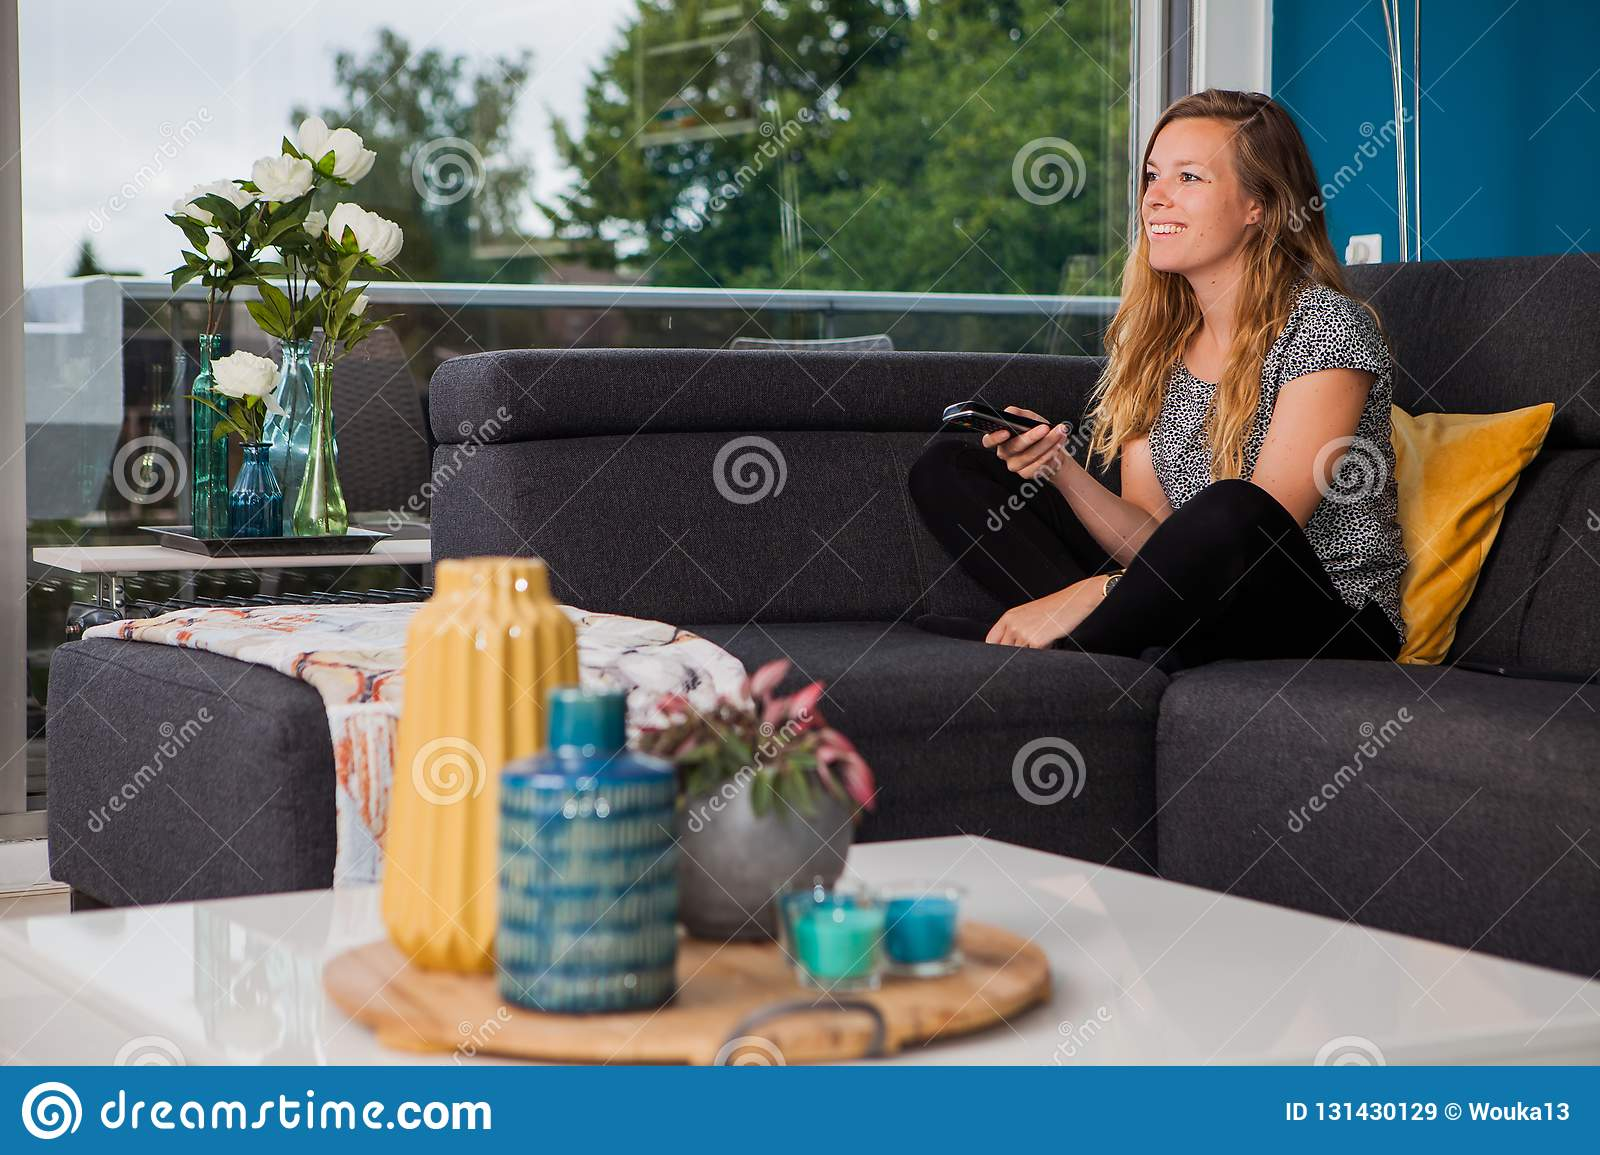 Young woman using a remote control on the couch